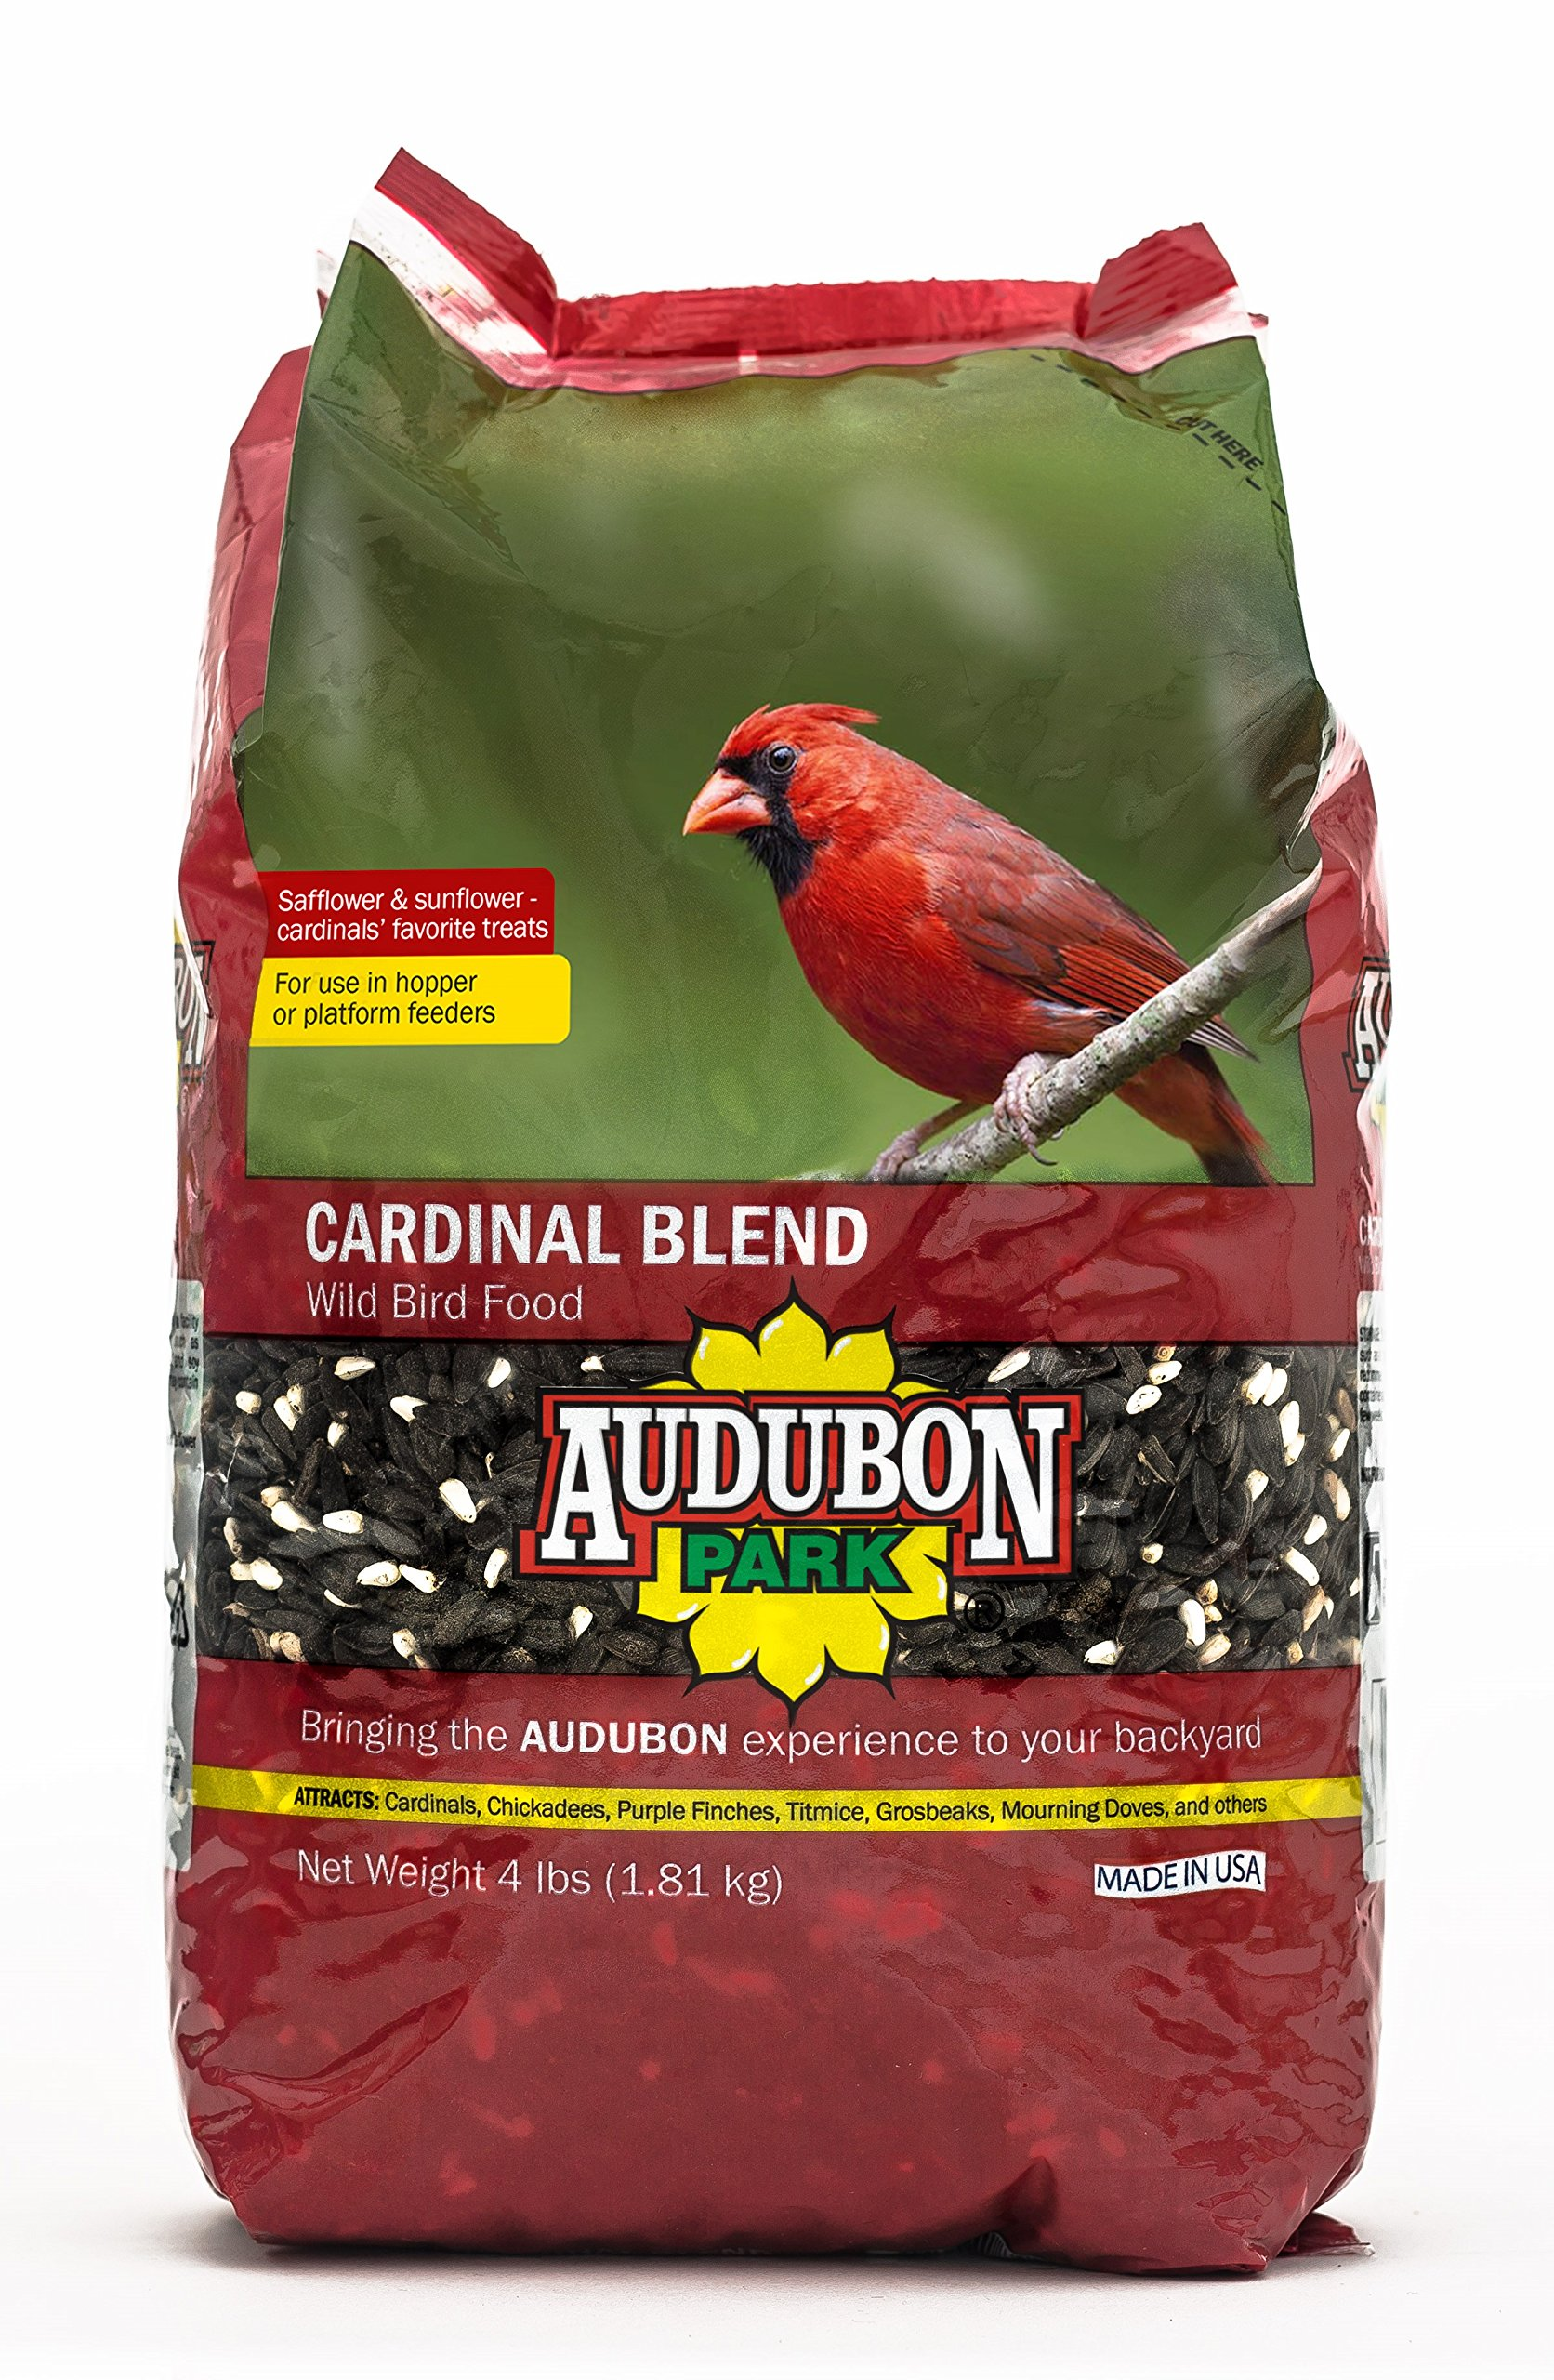 Aududon Park 12231 Cardinal Blend Wild Bird Food, 4-Pounds by Audubon Park